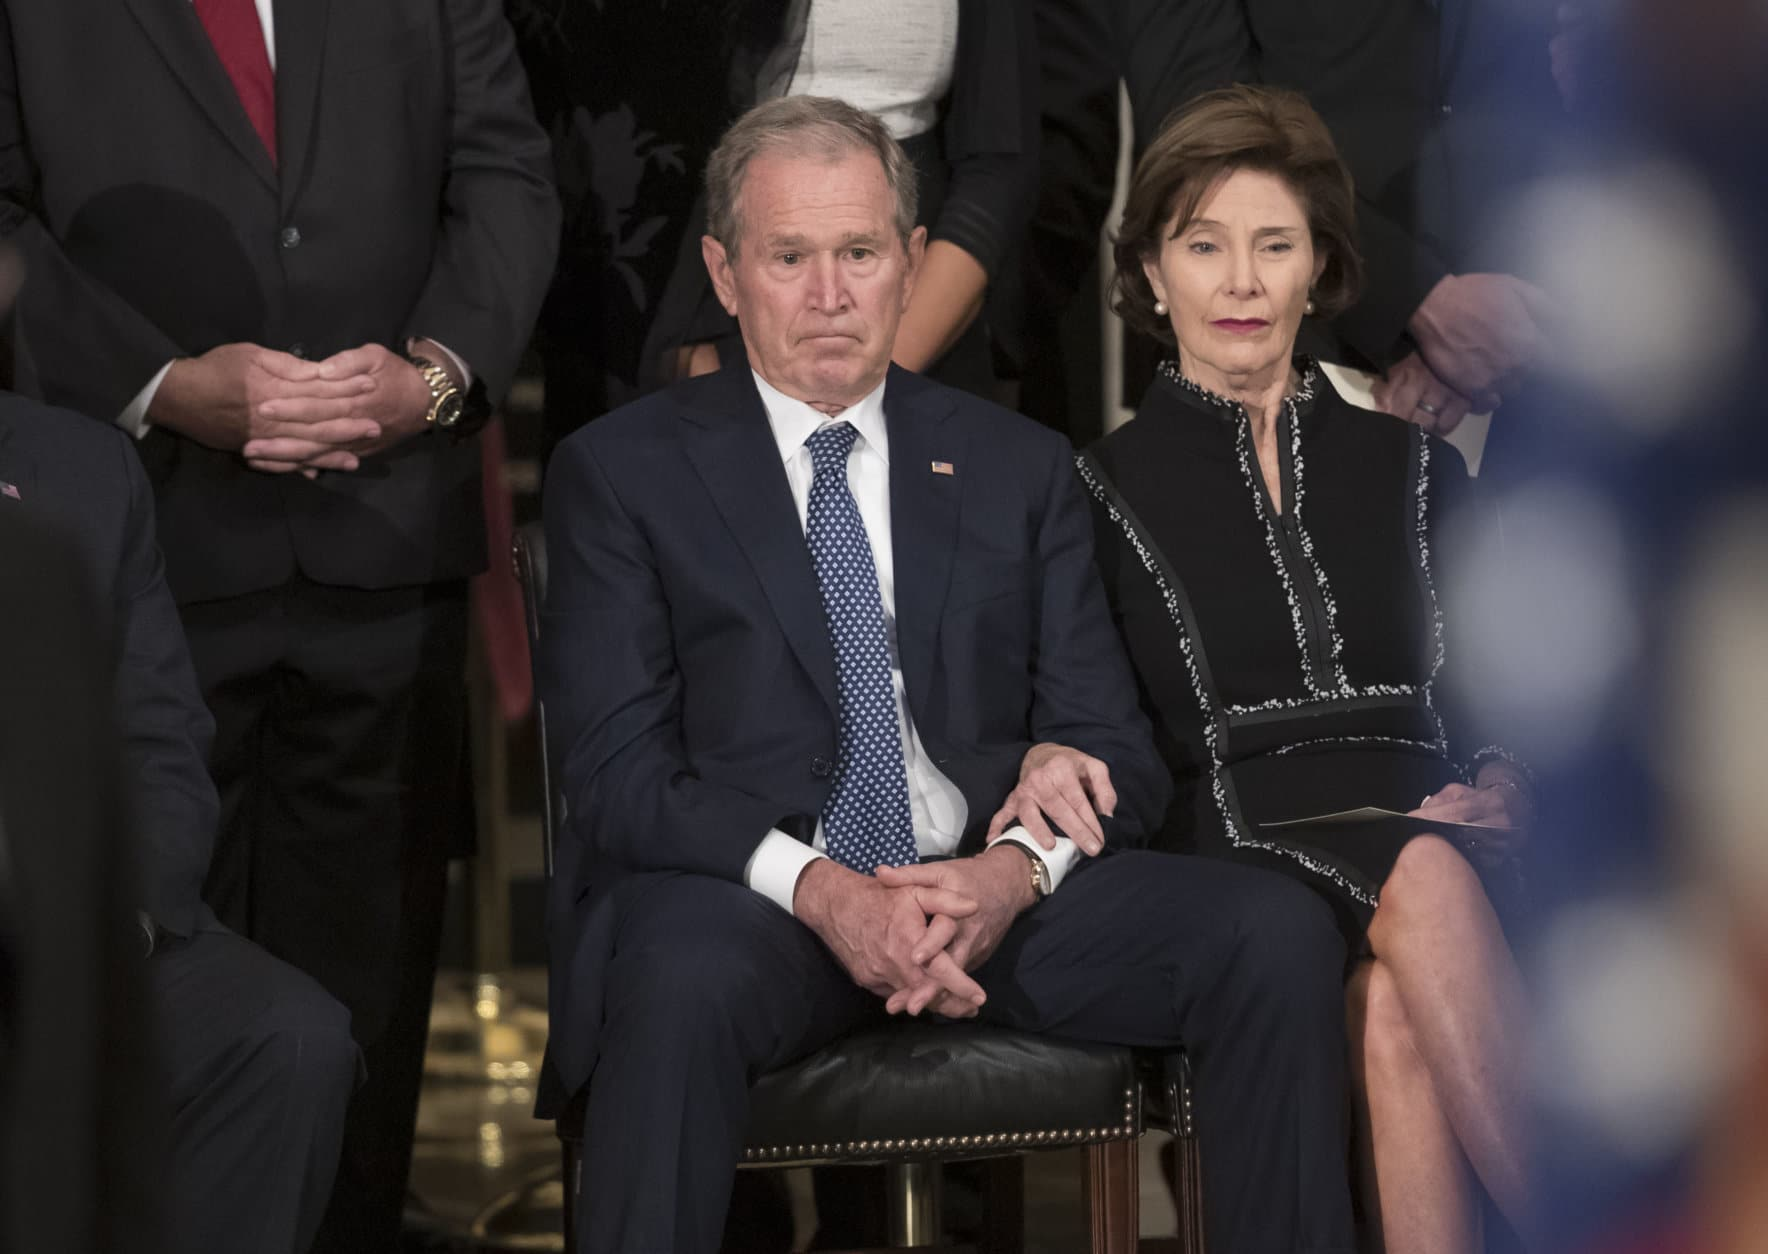 Former President George W. Bush, sits with former first lady Laura Bush, during ceremonies for his father, former President George H.W. Bush, as he lies in state at the Capitol Rotunda where in Washington, Monday, Dec. 3, 2018. (AP Photo/J. Scott Applewhite)